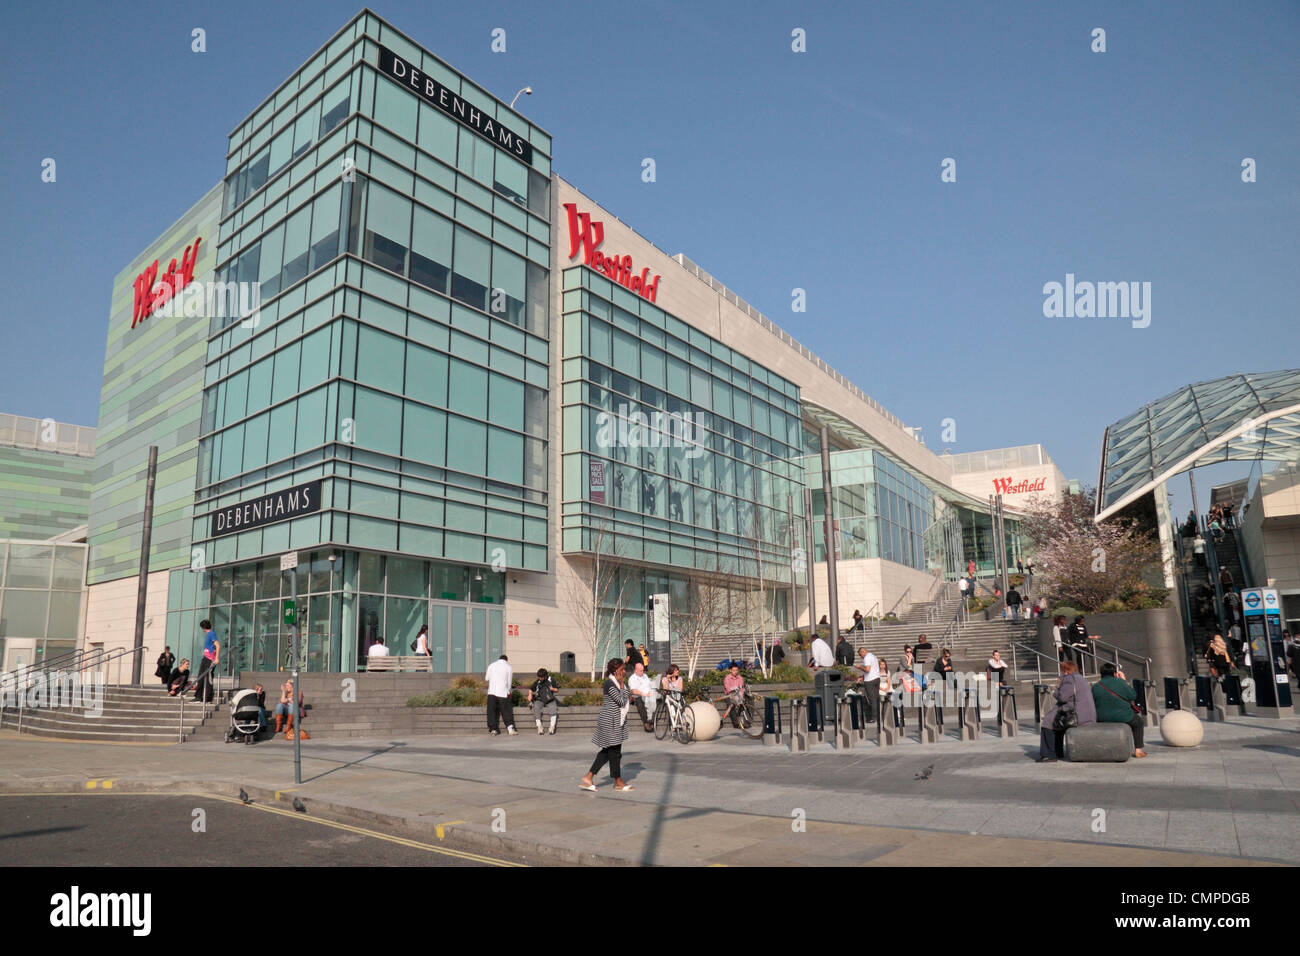 The Westfield London Shopping Centre in Shepherds Bush in London. - Stock Image